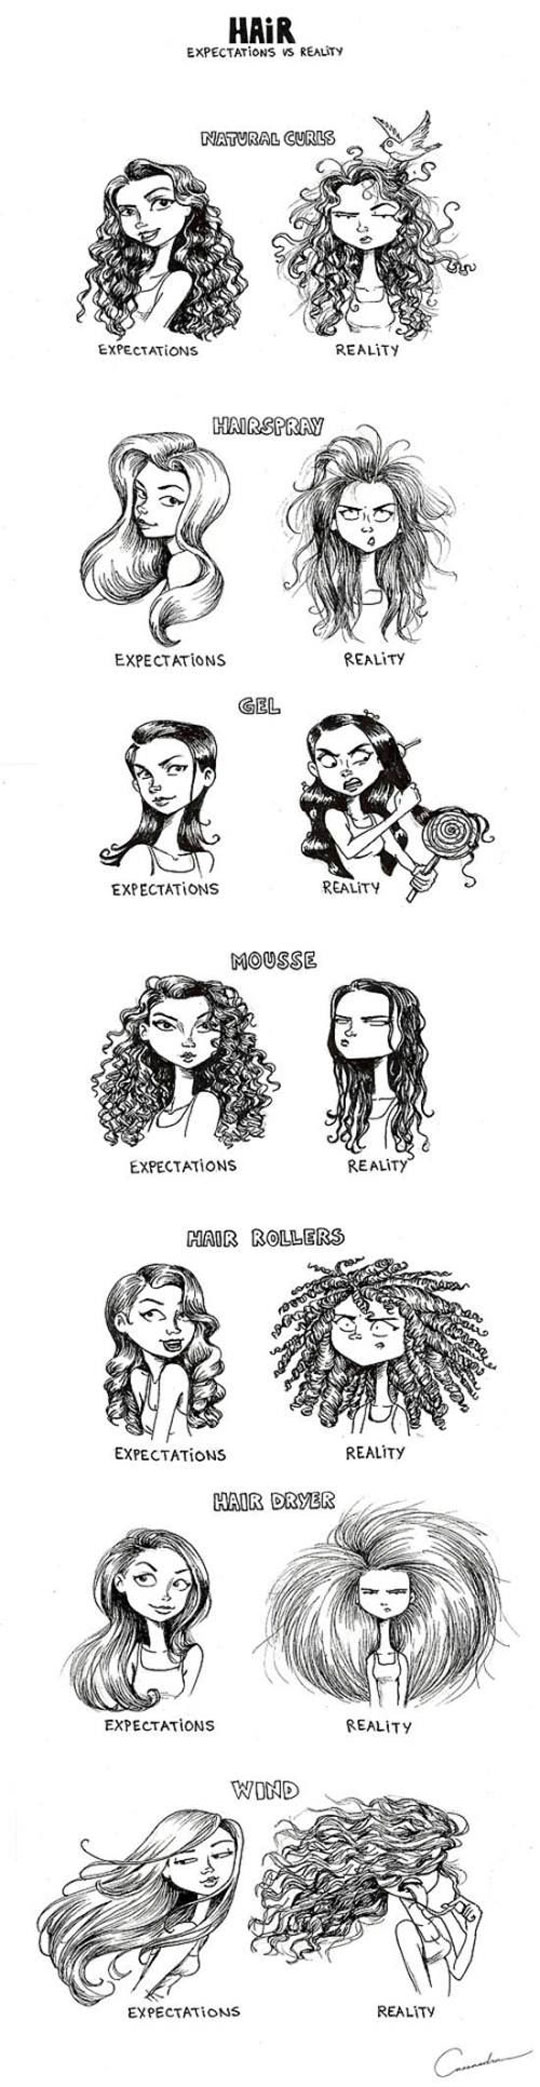 Hairstyle Expectations